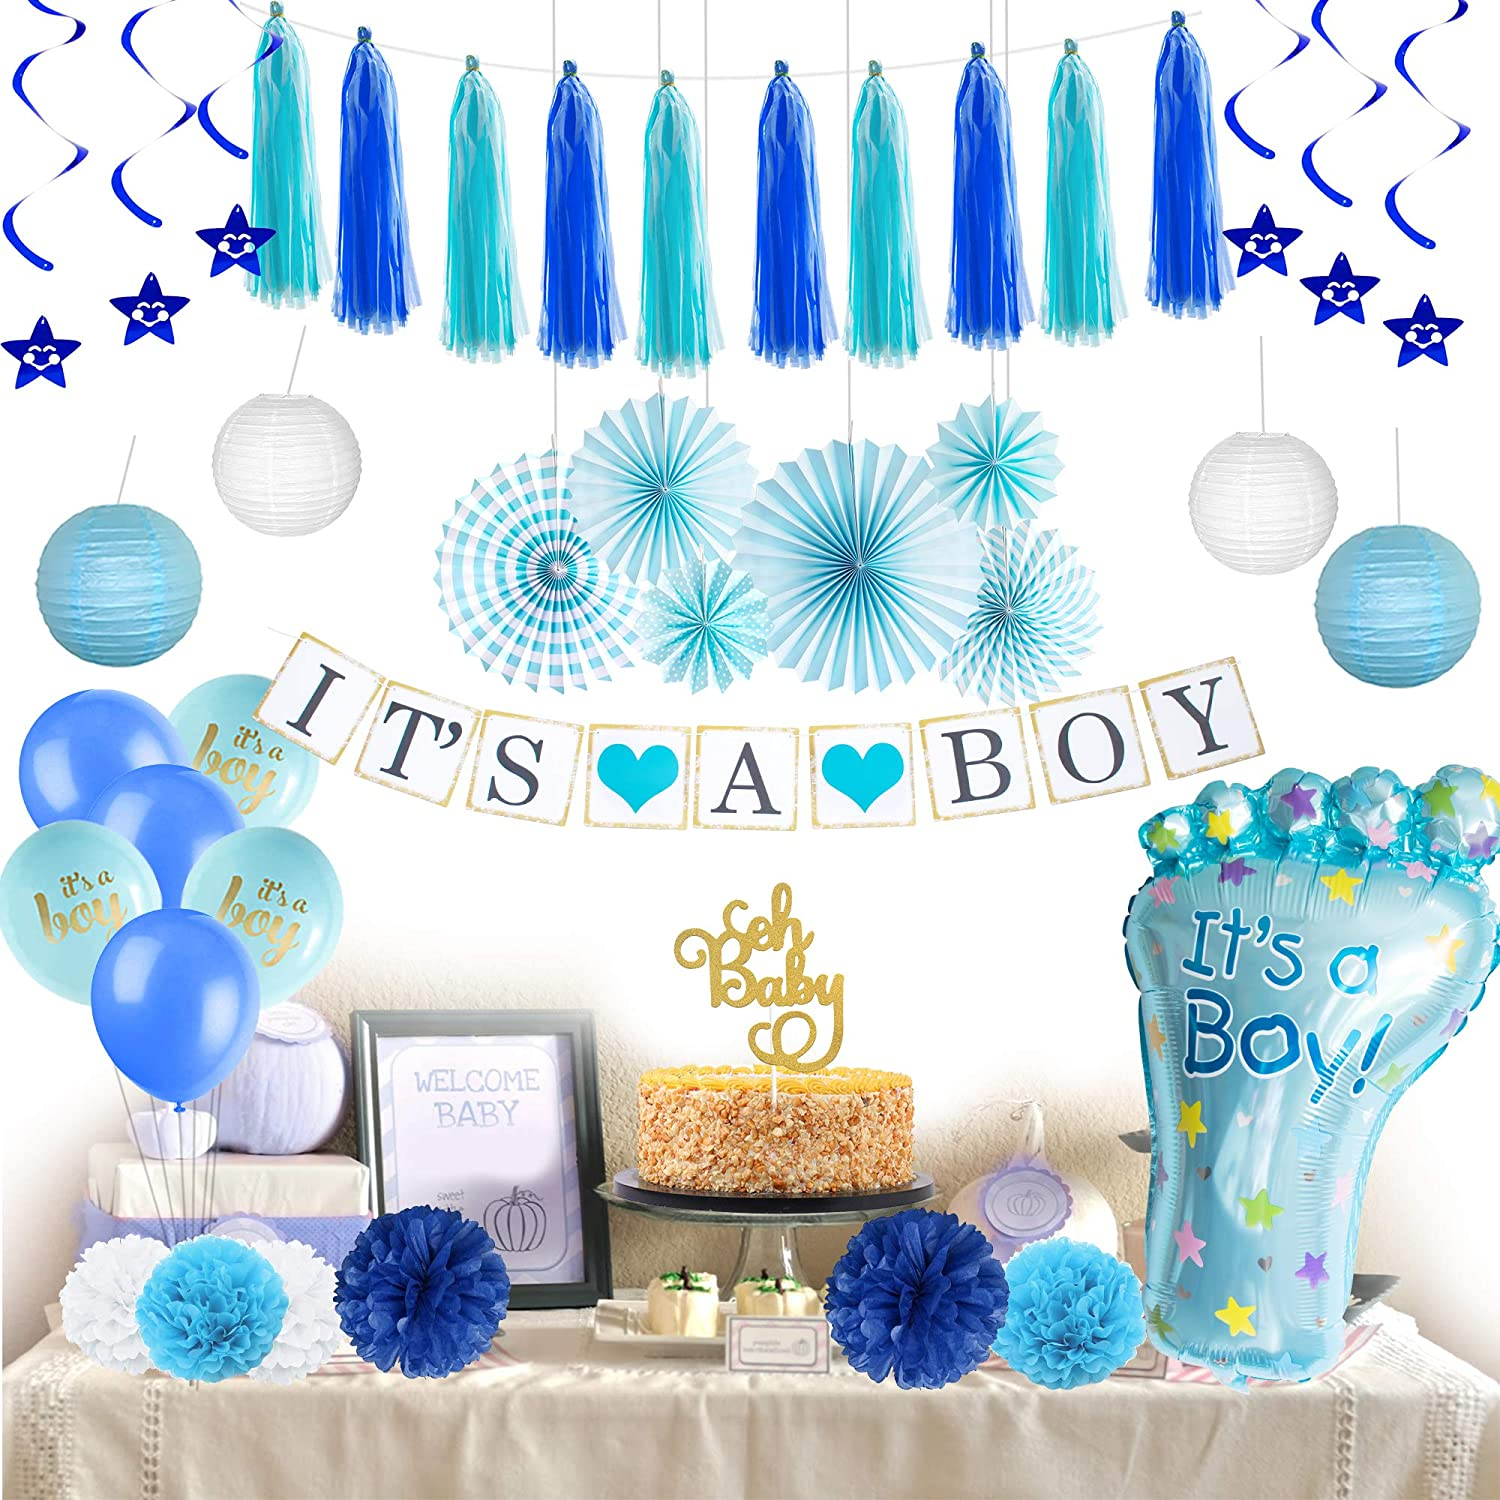 Decoration New Arrival Its a Boy 3/'s Newborn baby Shower Birthday Party